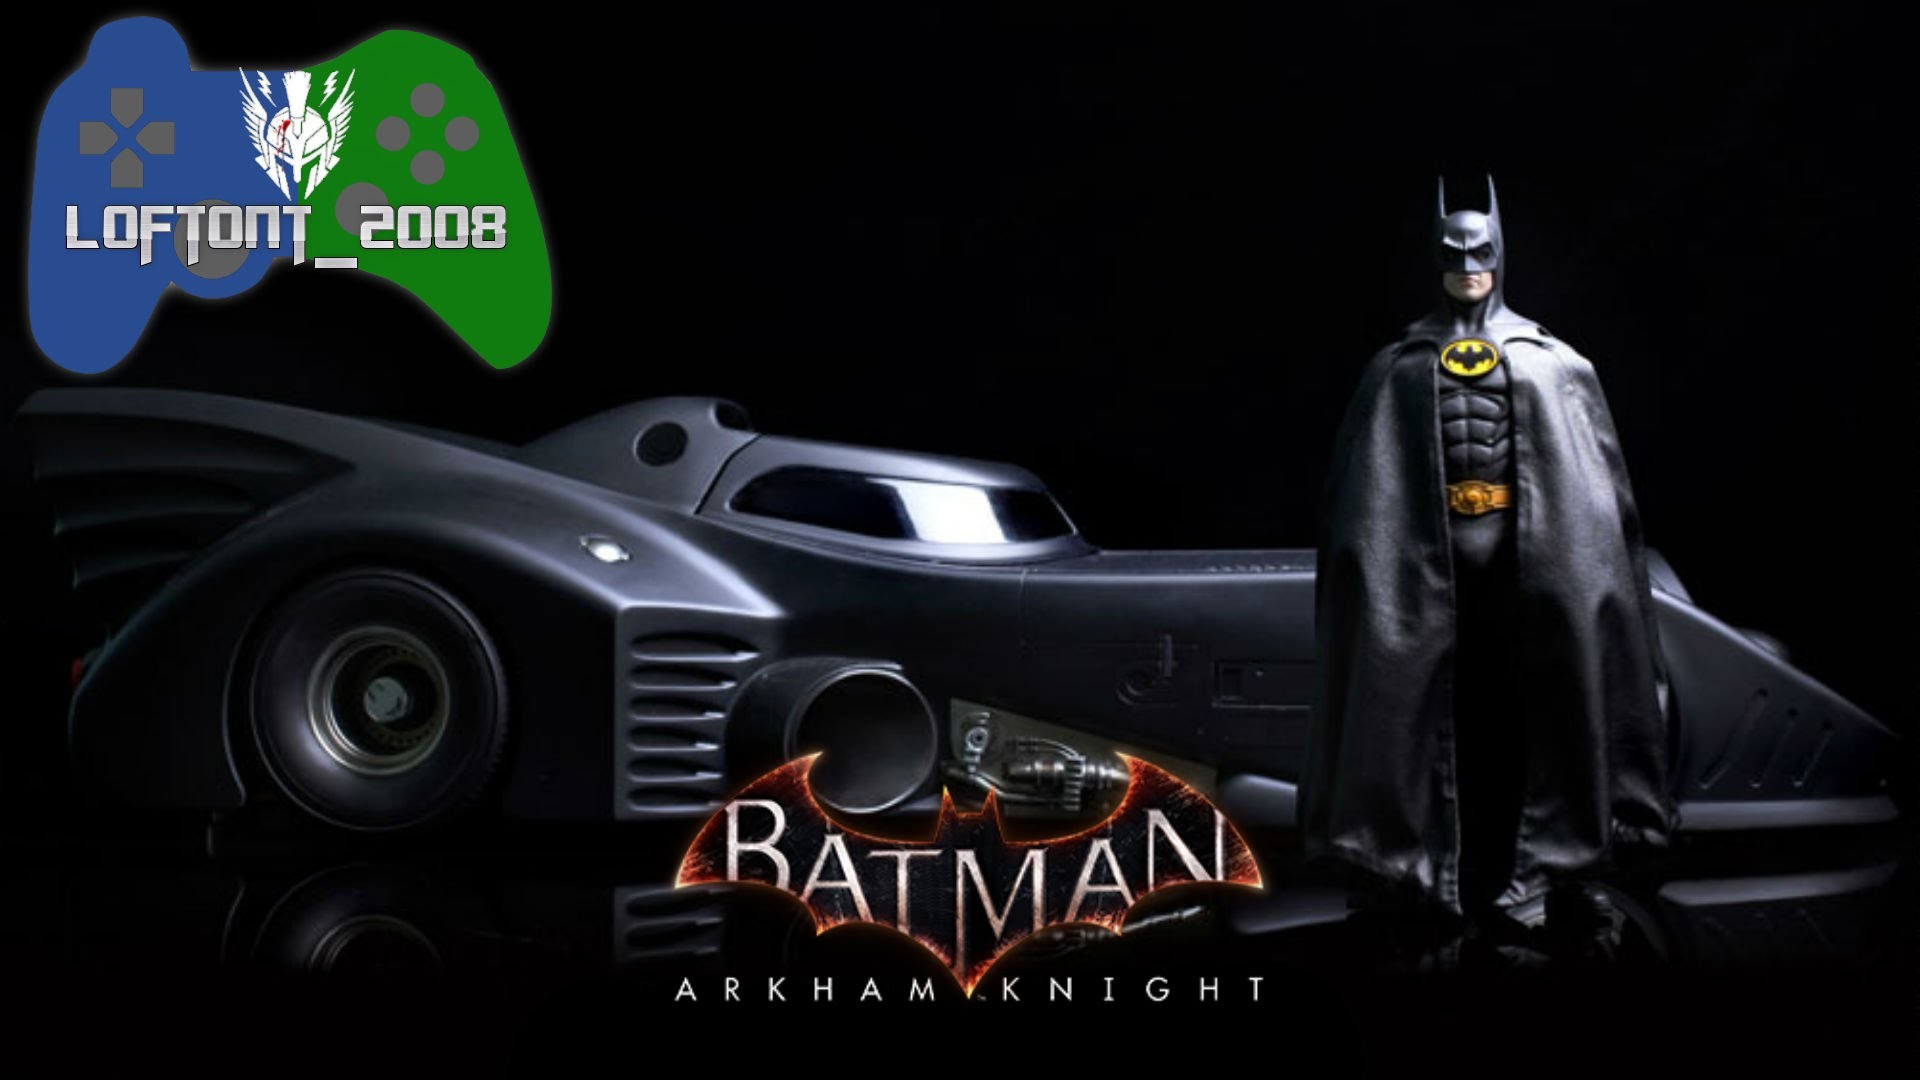 1920x1080 Batman: Arkham Knight The Series - 1989 Batmobile Nostalgia!!!